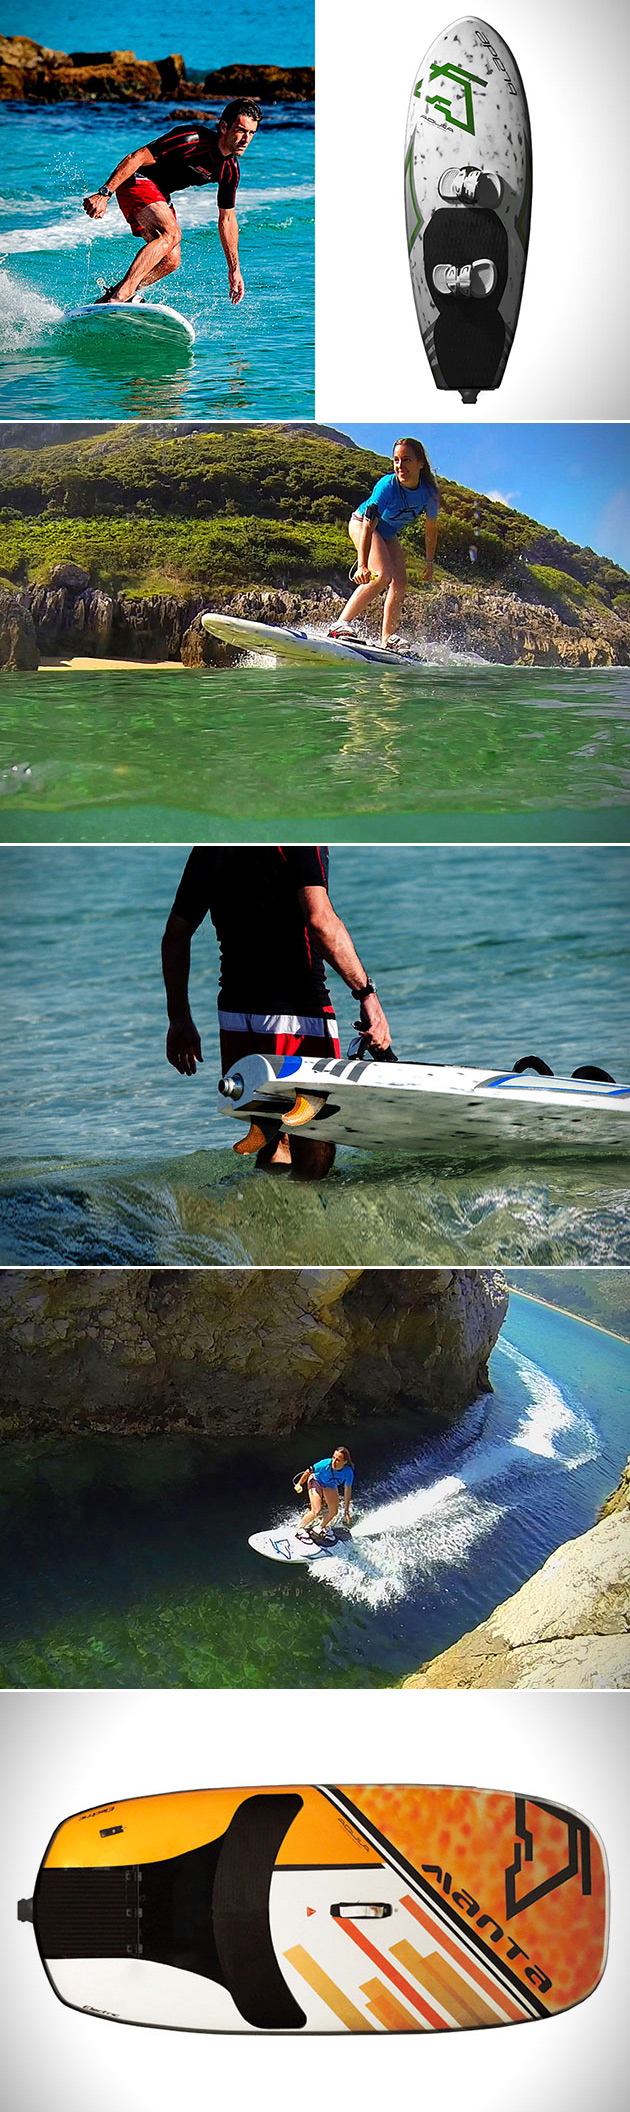 Electric Power Board : Aquila electric power board lets you shred waves at up to